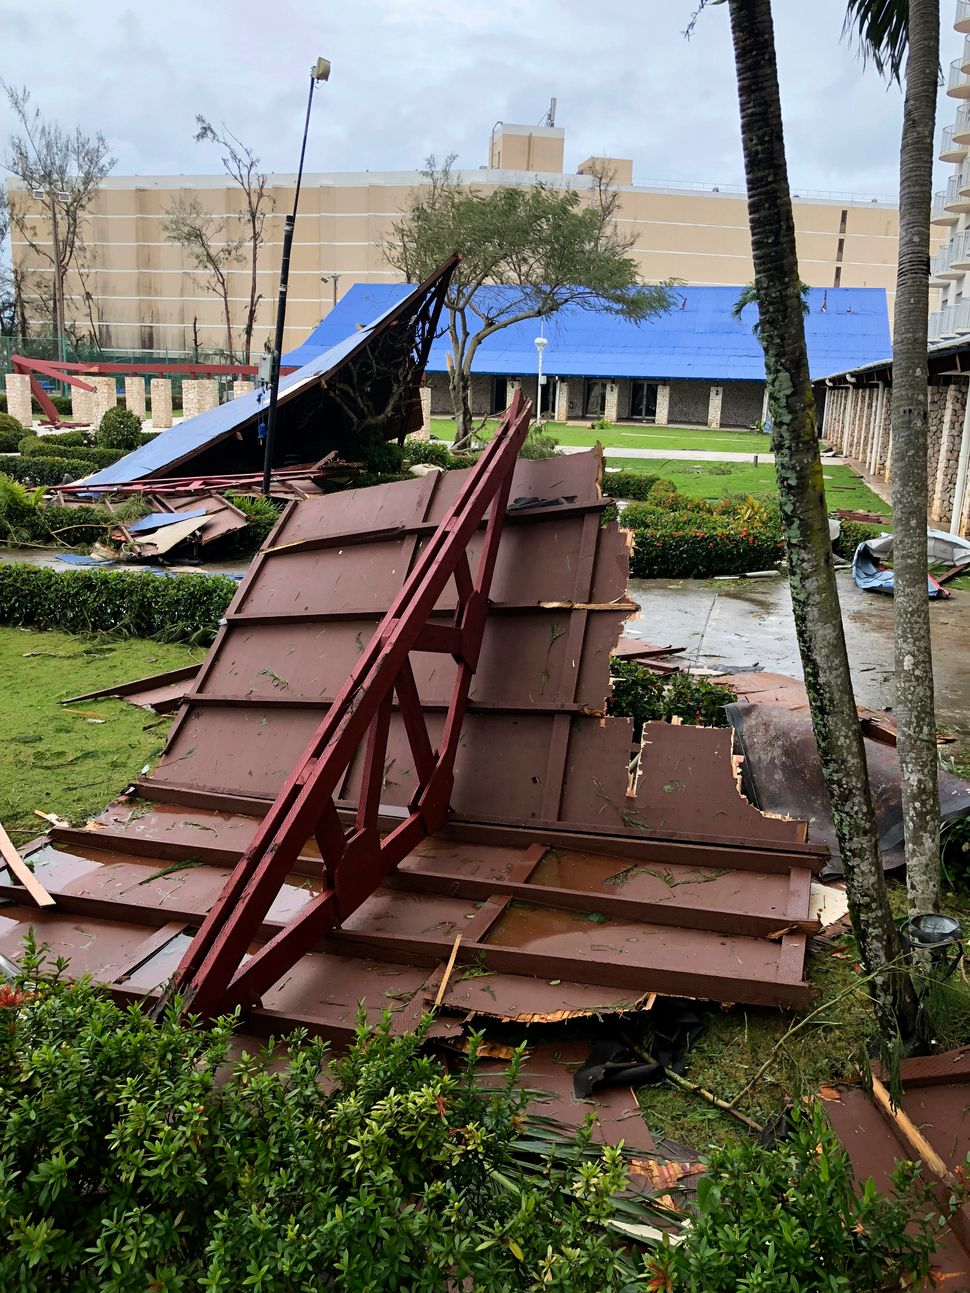 Maximum sustained winds of 180 mph were recorded around the eye of the storm, the National Weather Service said.